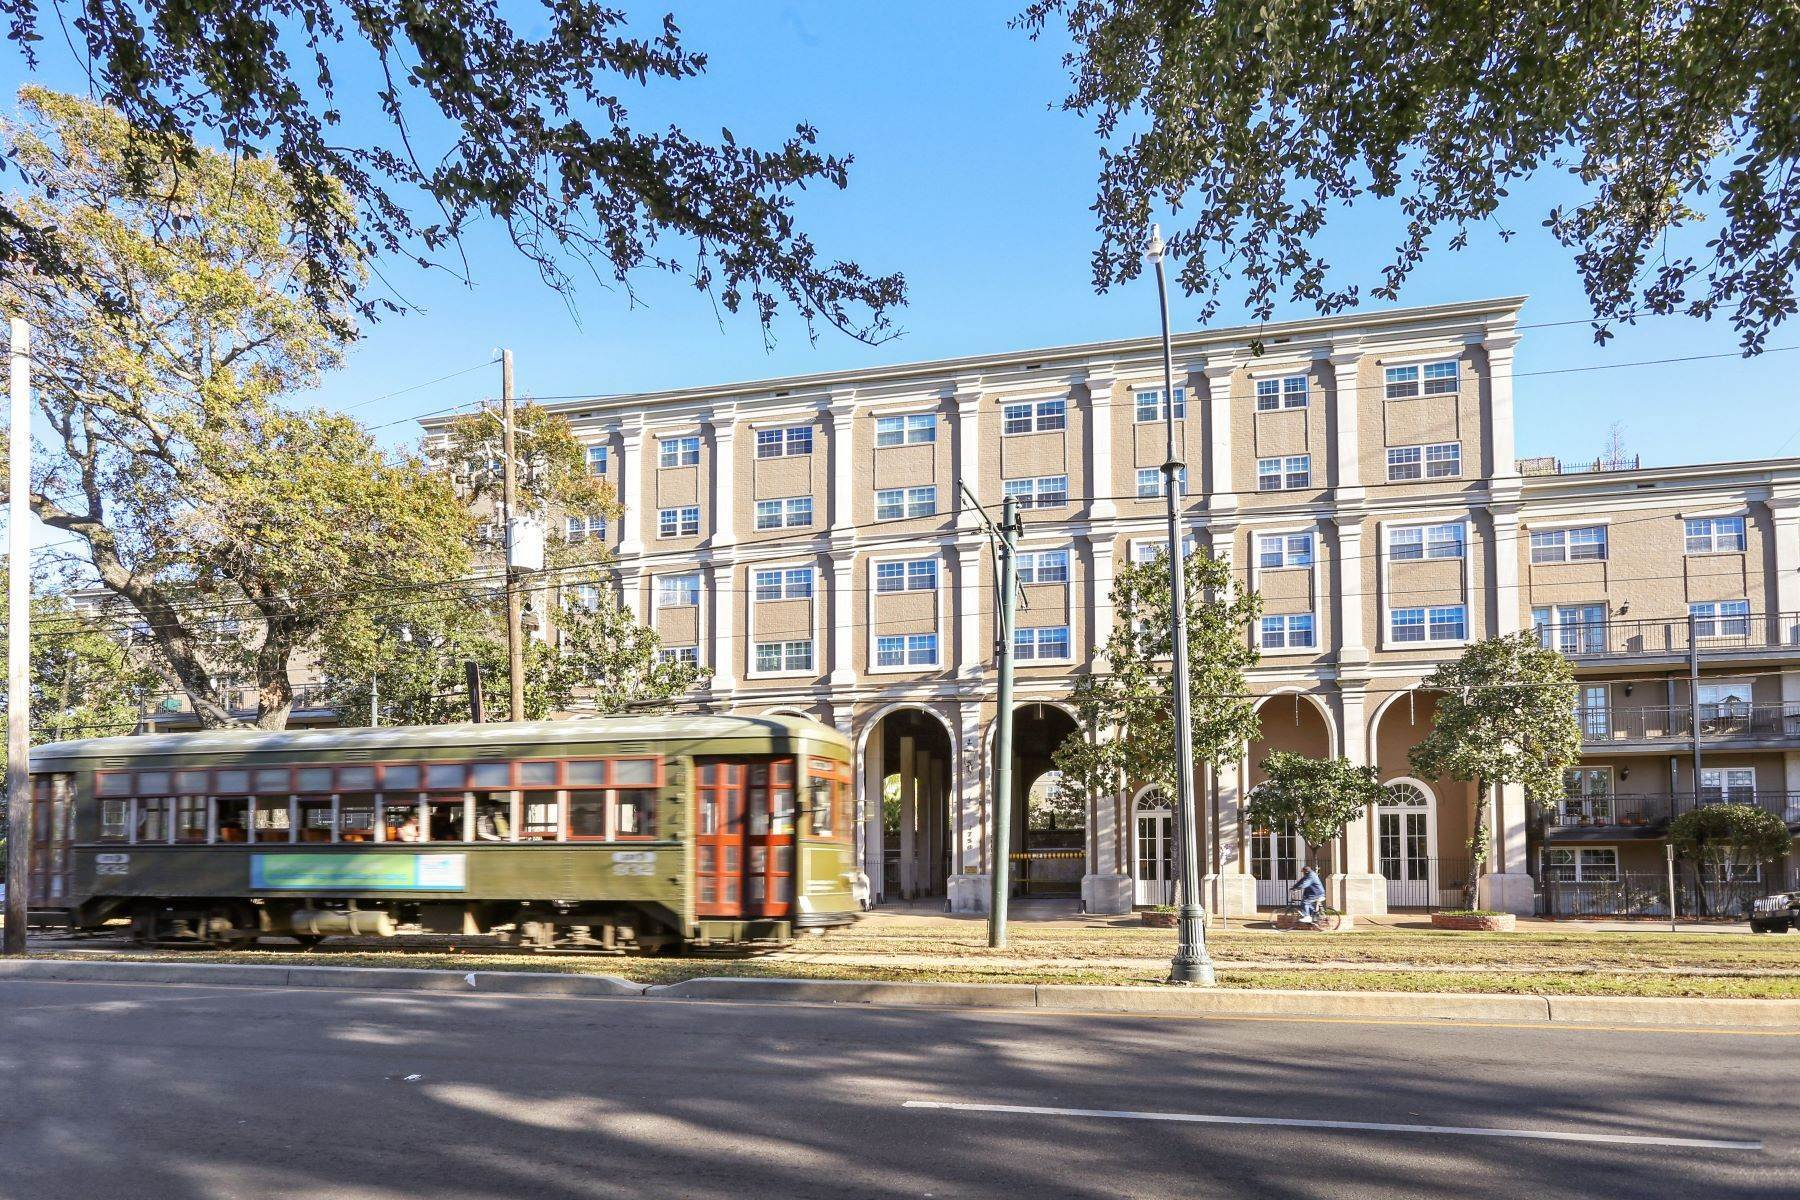 Condominiums for Sale at St Charles Avenue Condo 1750 St Charles Avenue, 337 New Orleans, Louisiana 70130 United States